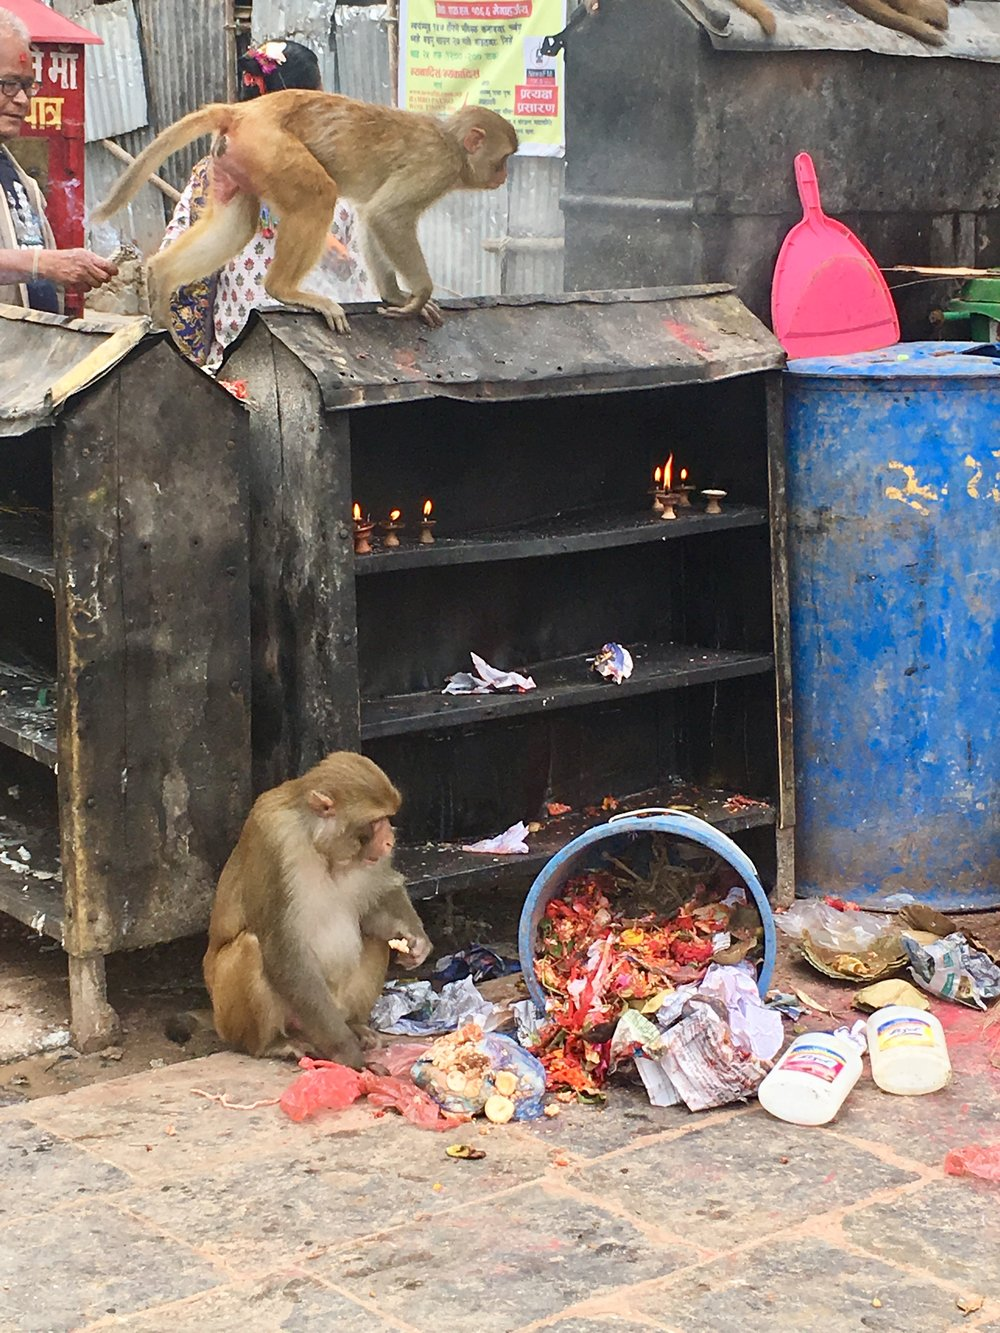 The last time I visited a temple overrun with monkeys it was the Batu Caves in Malaysia and two of the rascals attacked me. One pulled my hair while I simultaneously played a game of tug-of-war with another for my handbag.